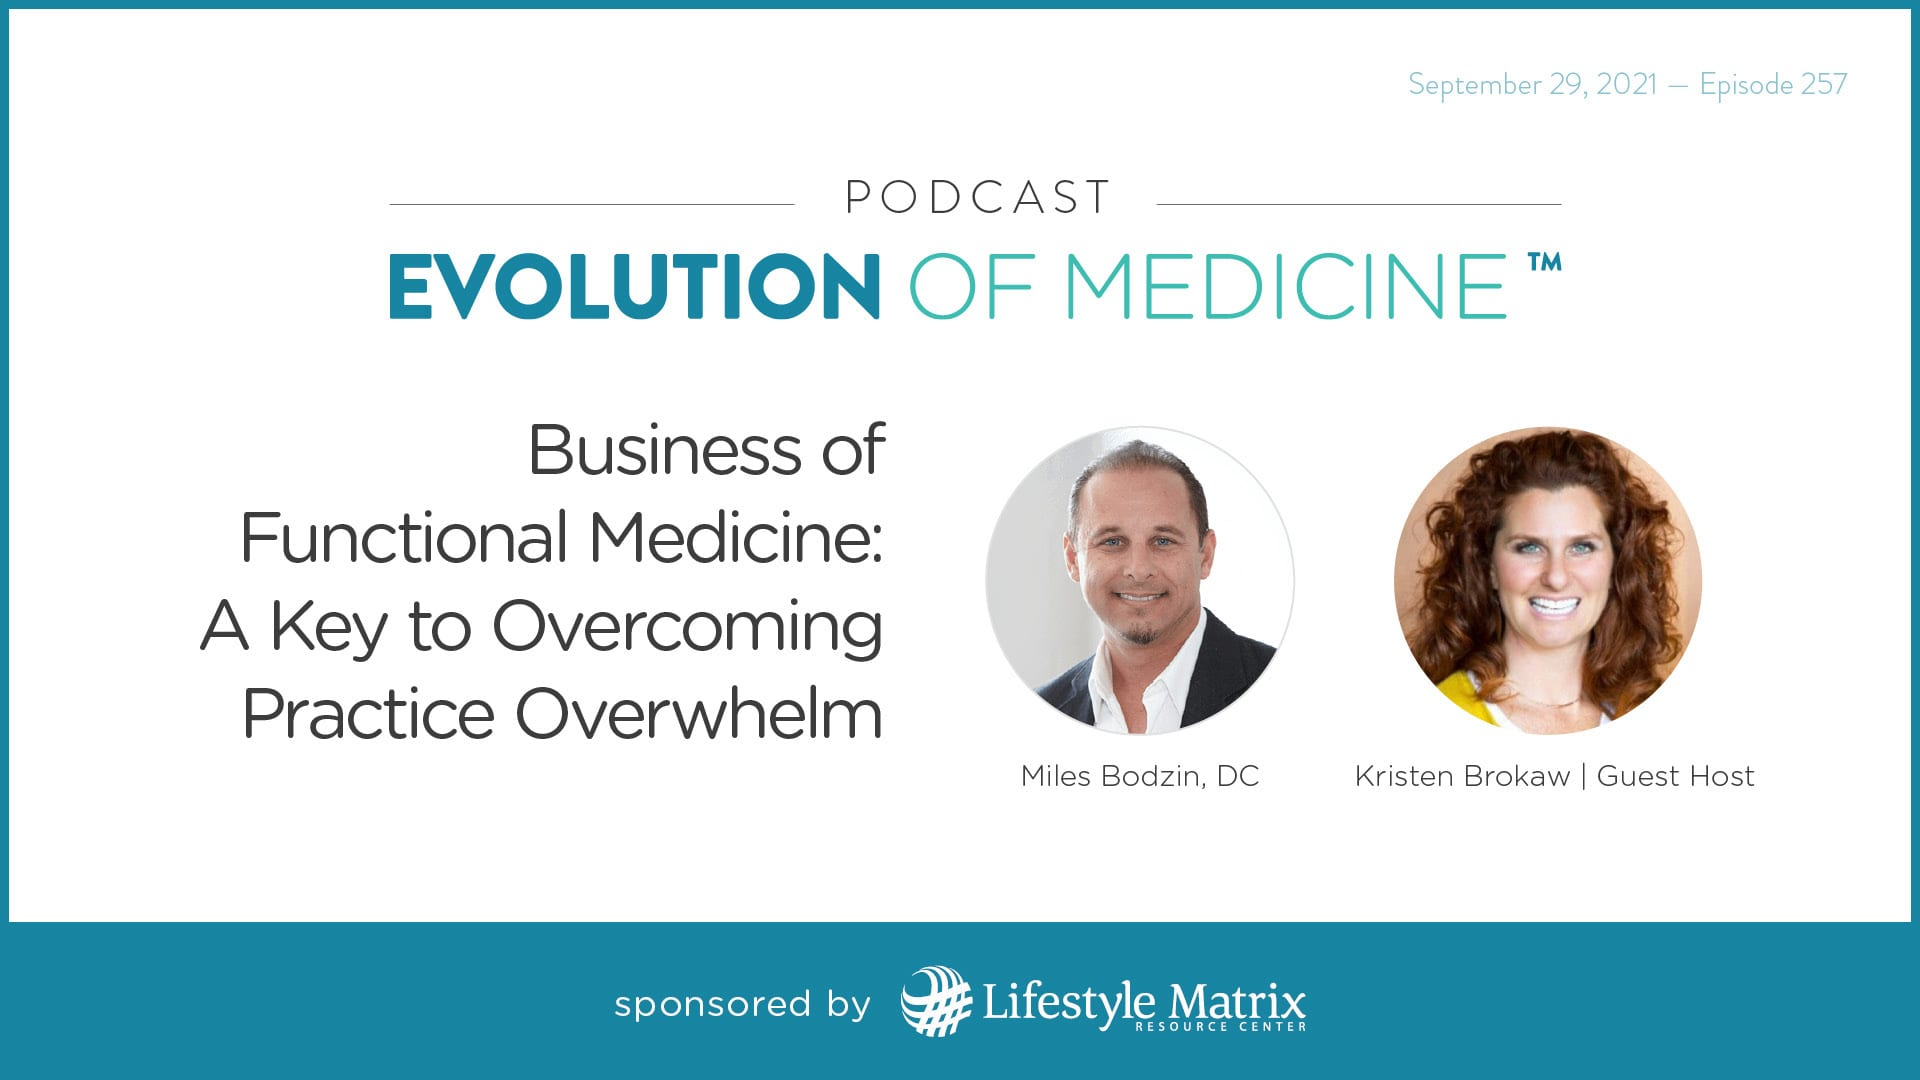 Business of Functional Medicine: A Key to Overcoming Practice Overwhelm